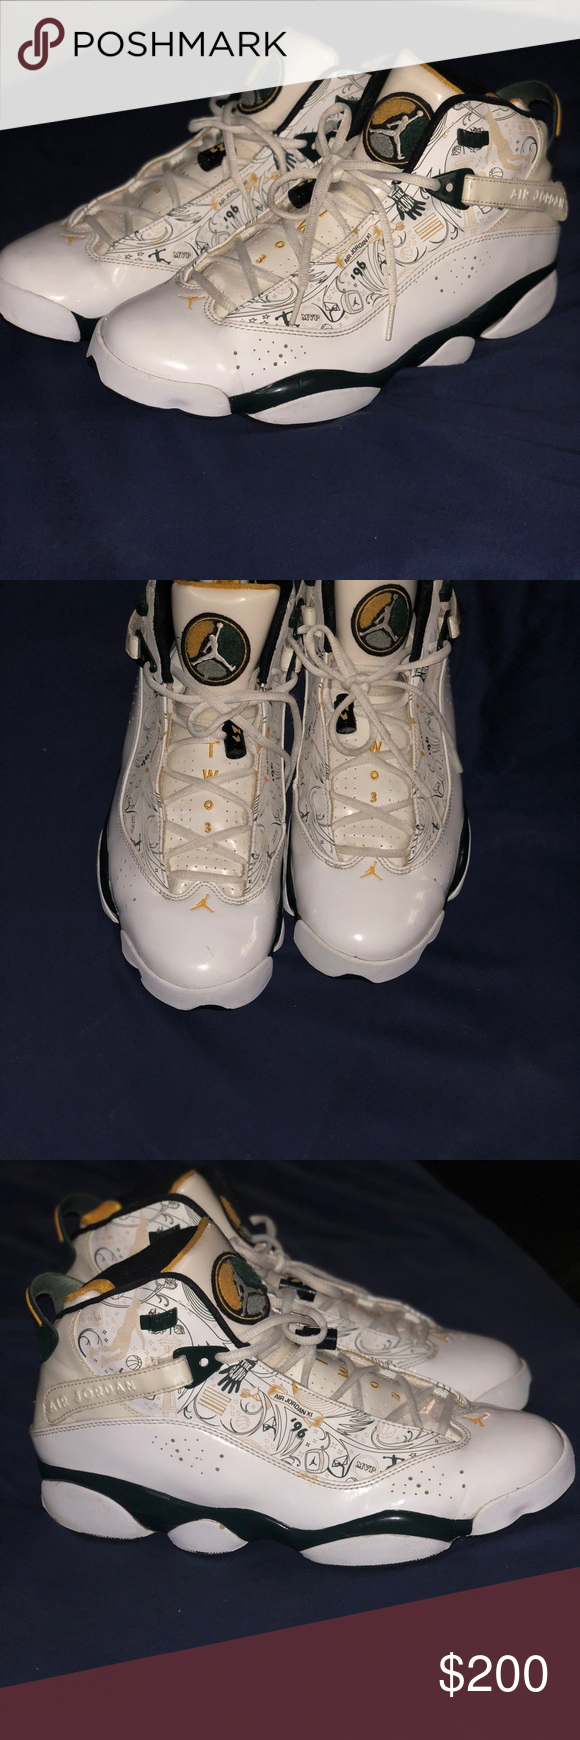 ba20bd8fa1ac ... promo code for jordan championship six rings supersonics size 12 worn.  8 10 shoes only